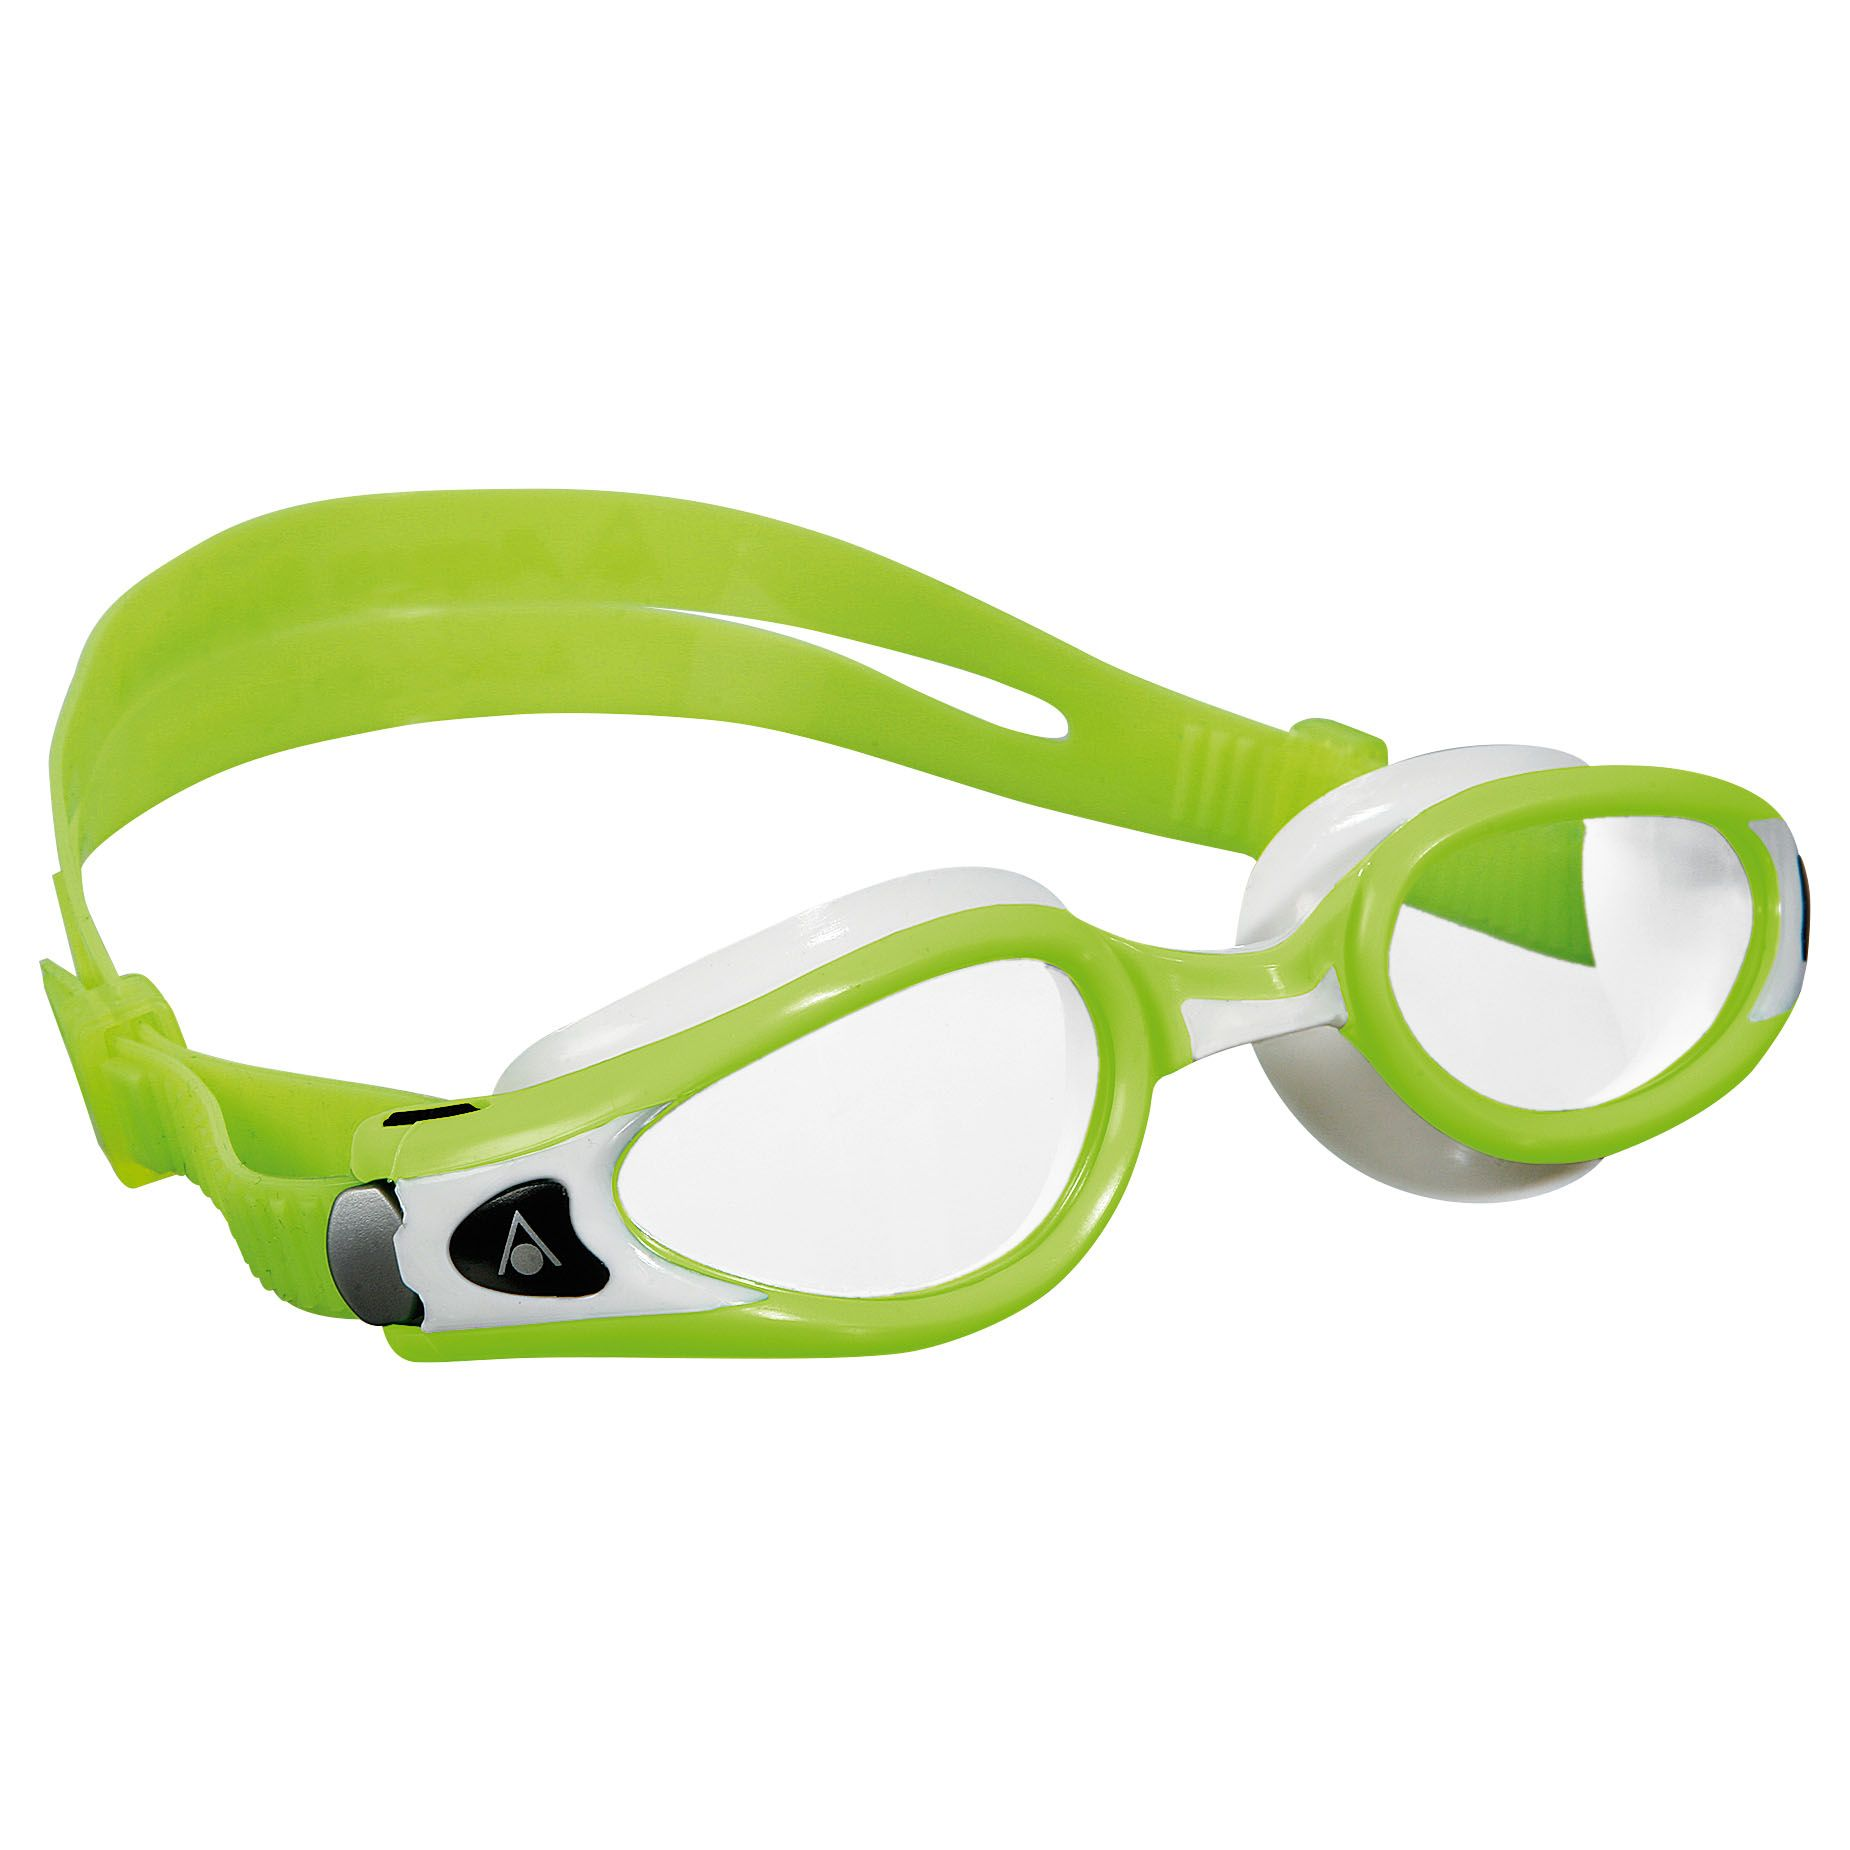 Aqua Sphere Kaiman Exo Small Fit Swimming Goggles Clear Lens